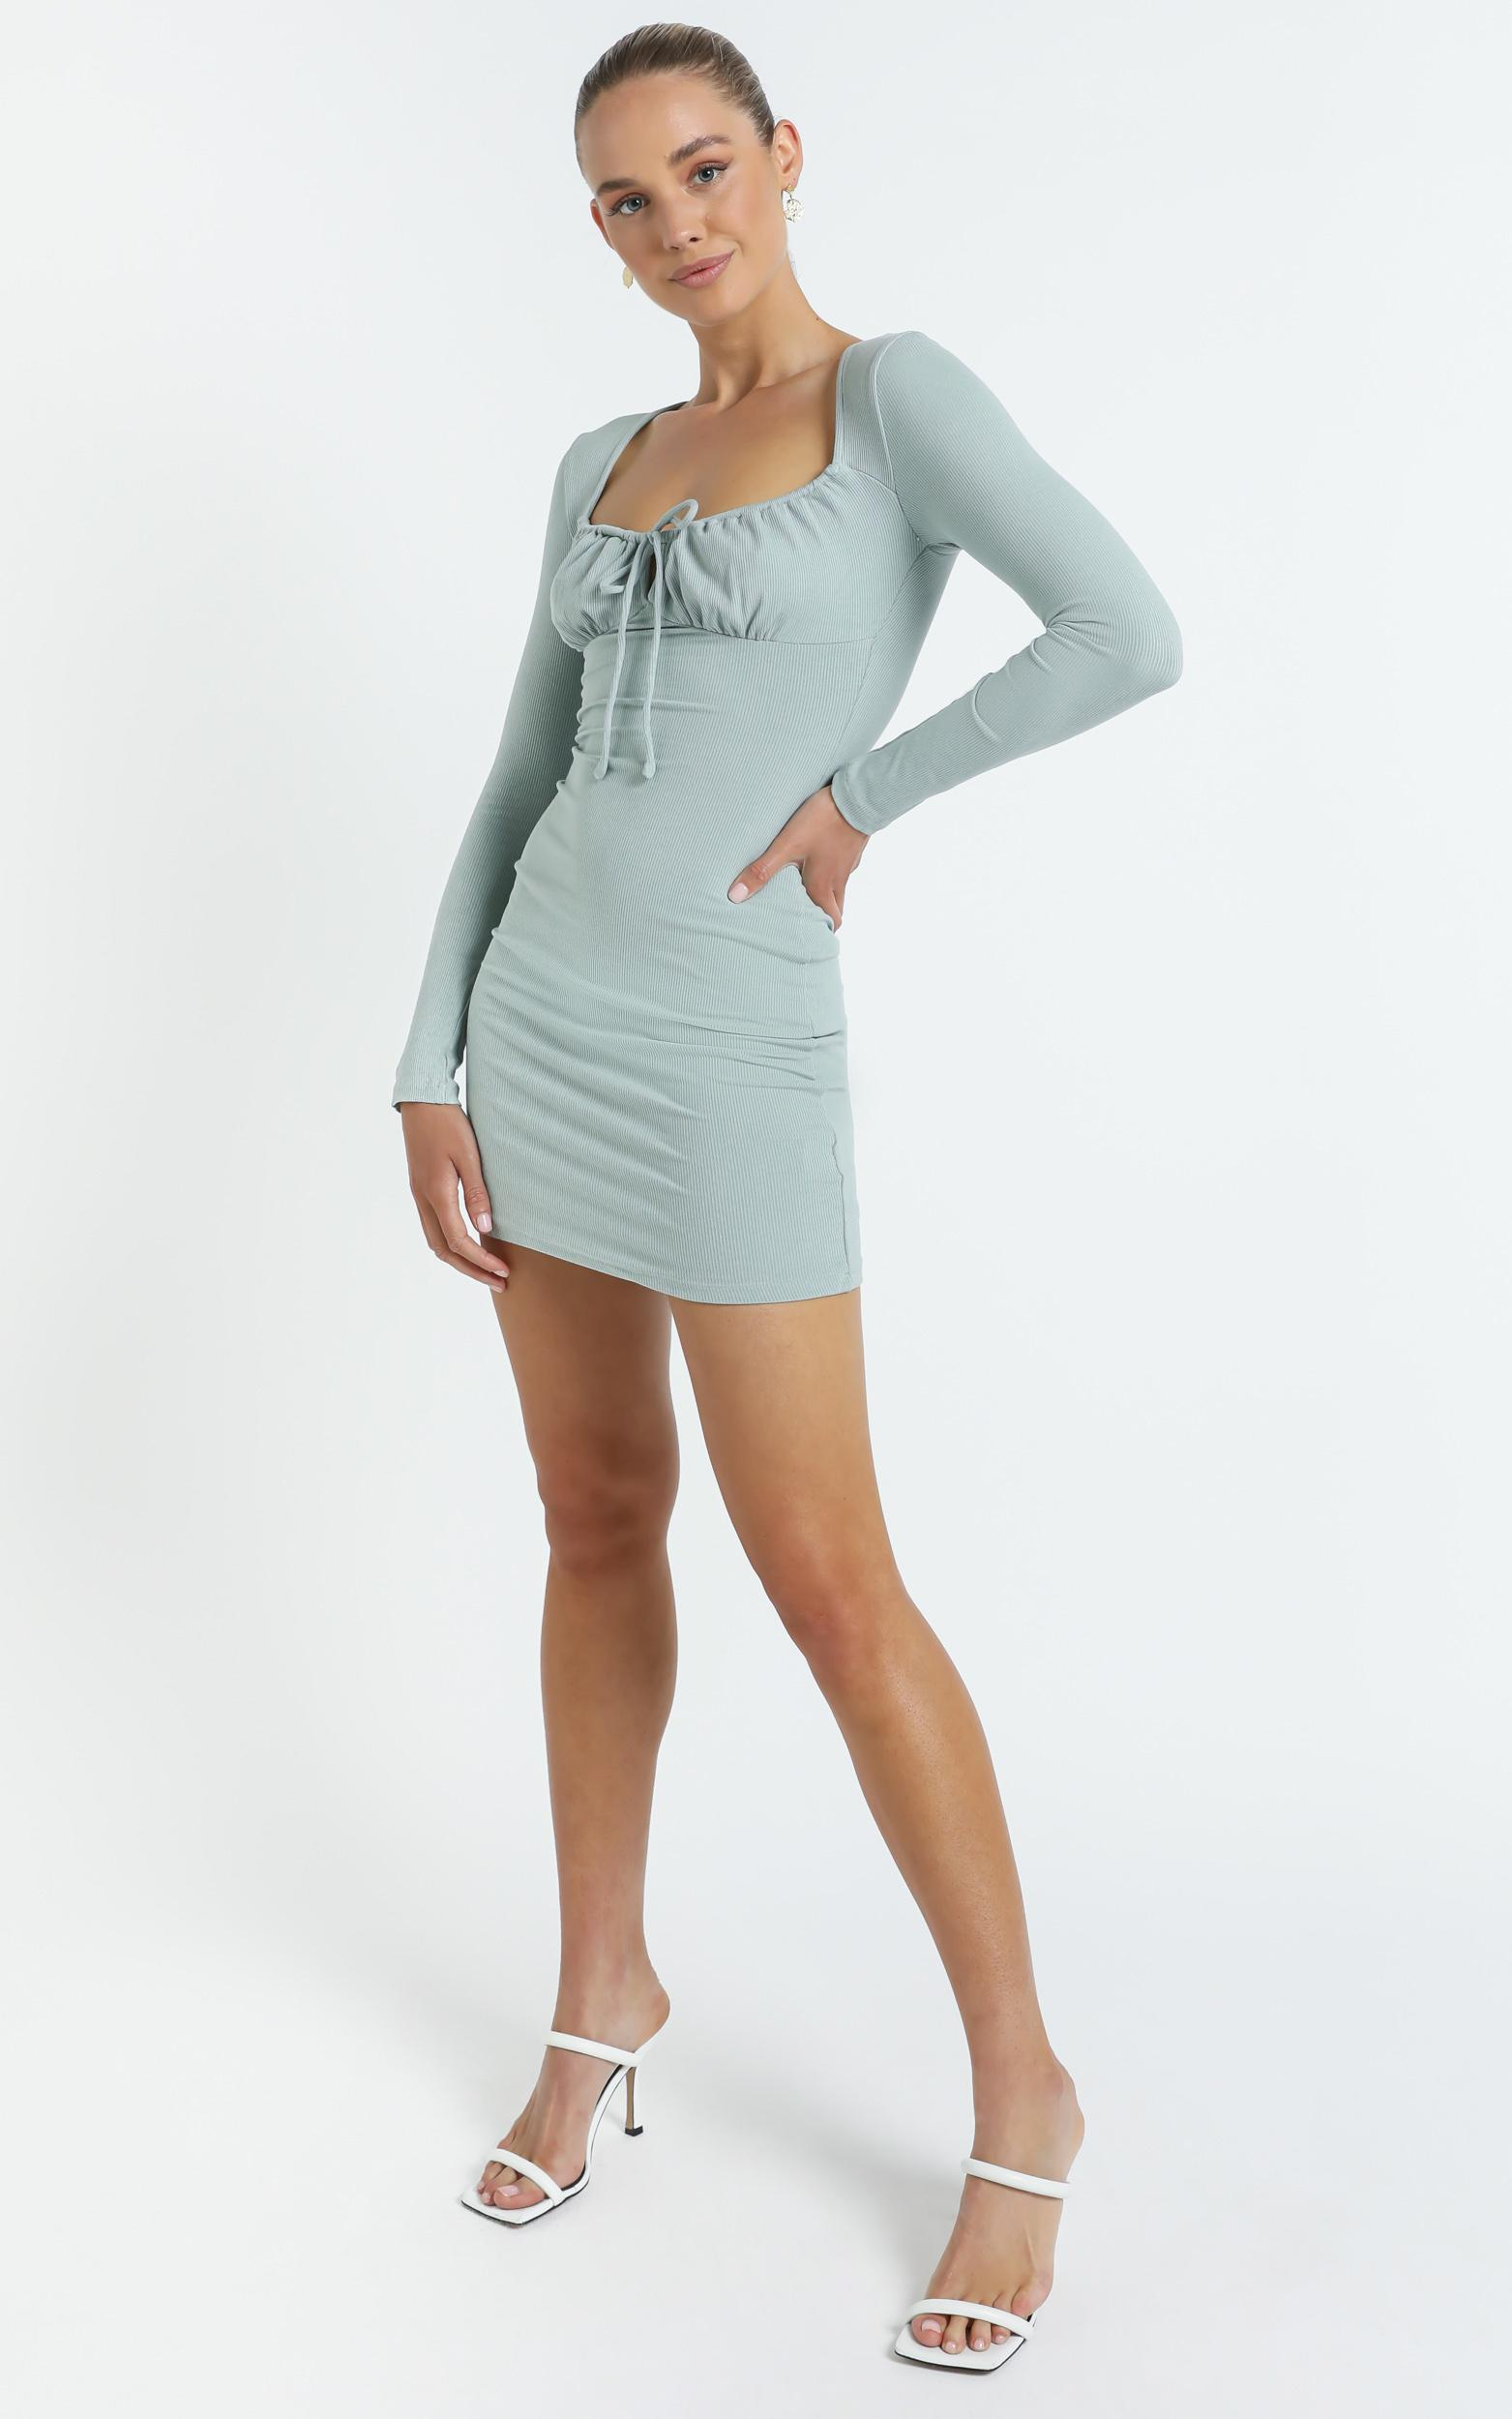 Swanson Dress in Khaki - 14 (XL), GRN1, hi-res image number null